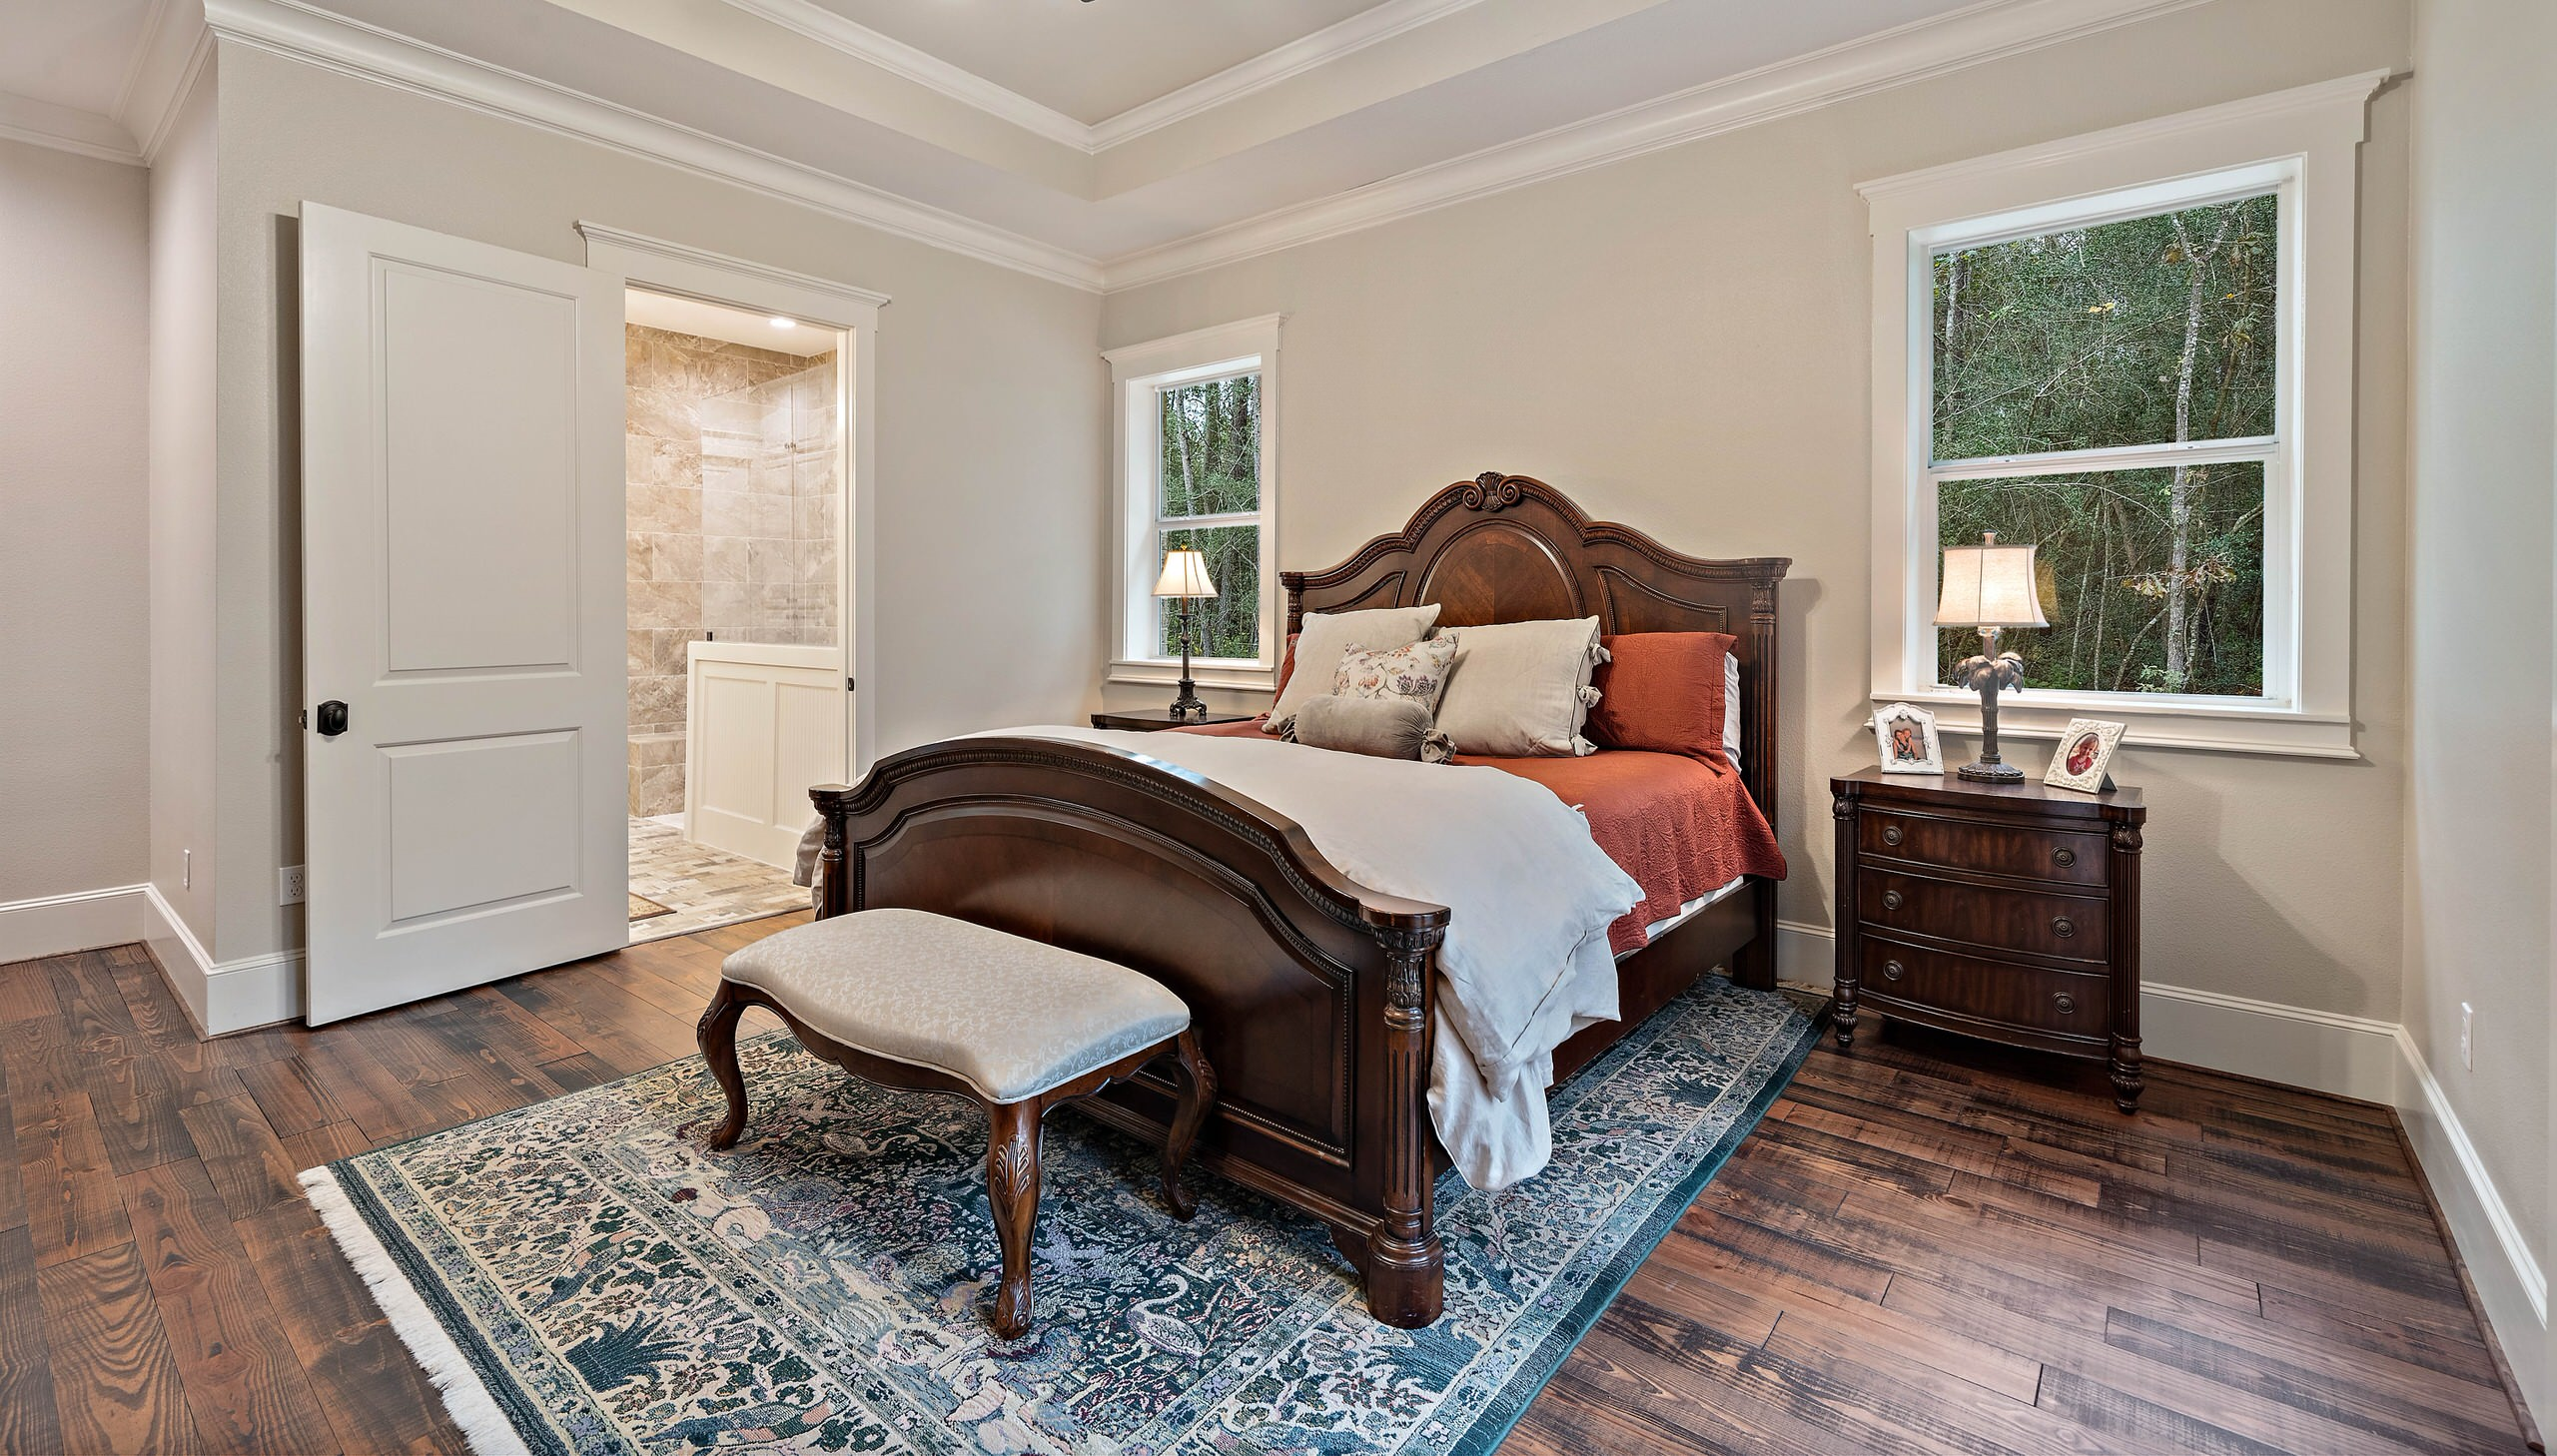 23/01/2020· ceiling design 2020 in the bedroom. 75 Beautiful All Ceiling Designs Bedroom Pictures Ideas October 2021 Houzz